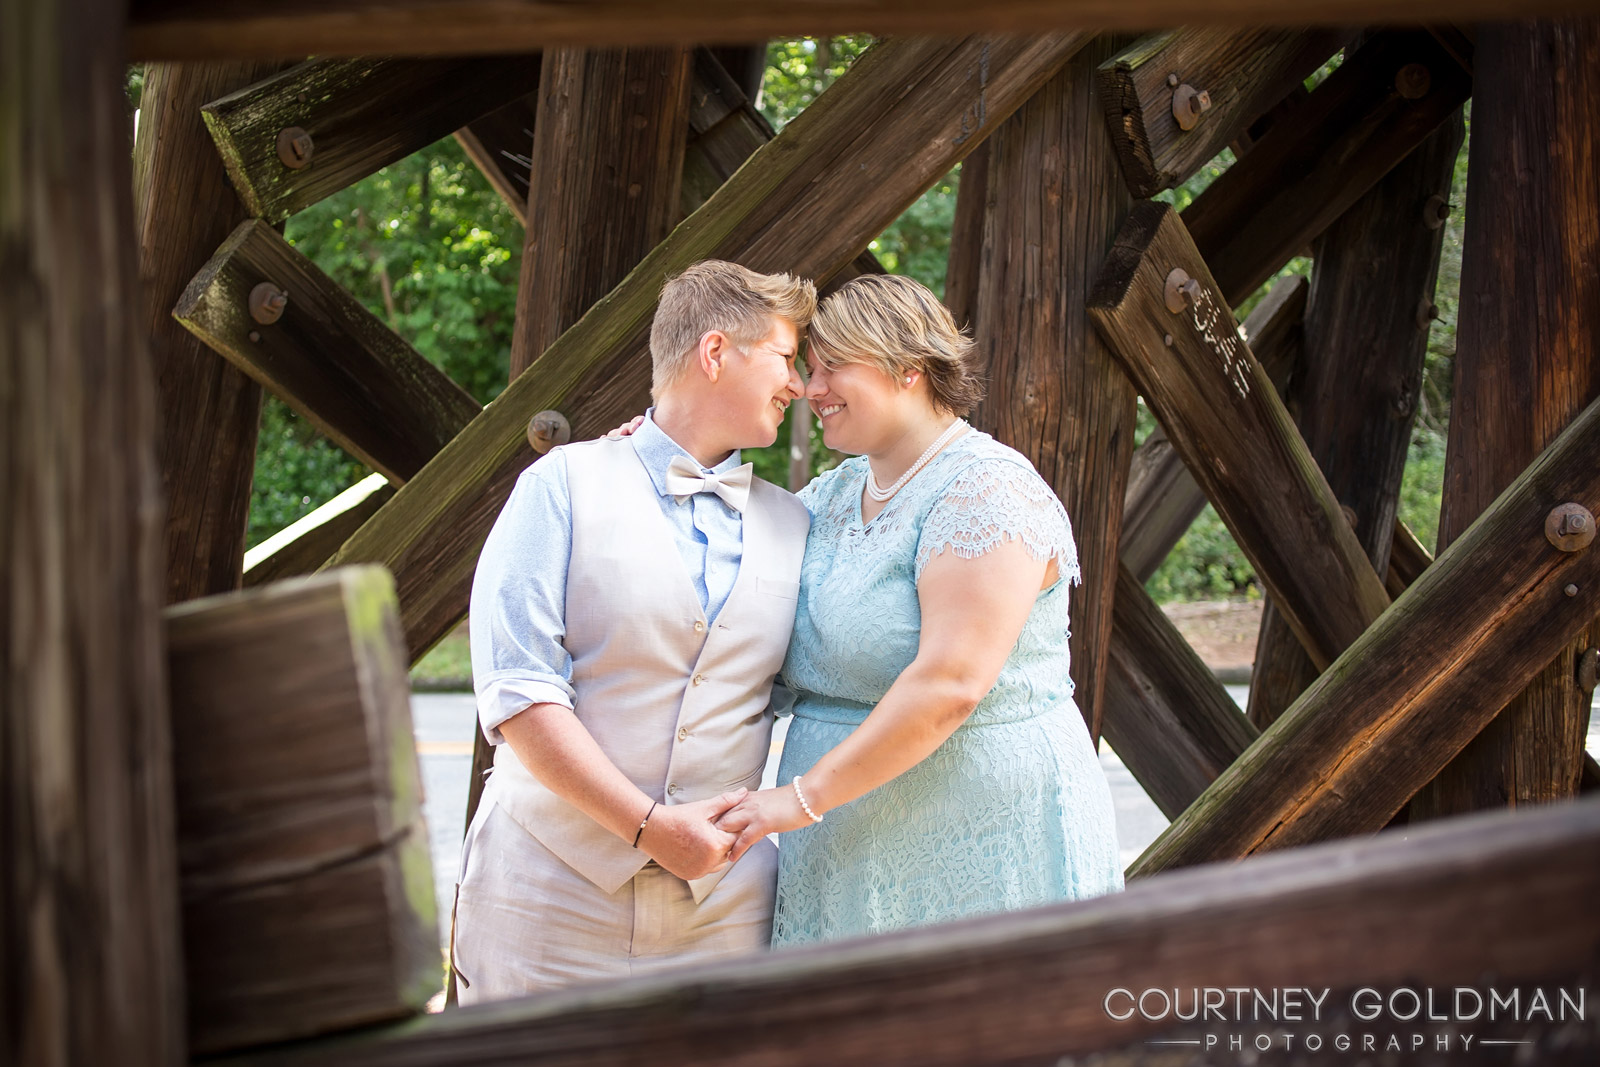 Atlanta-Wedding-Photography-by-Courtney-Goldman-37.jpg